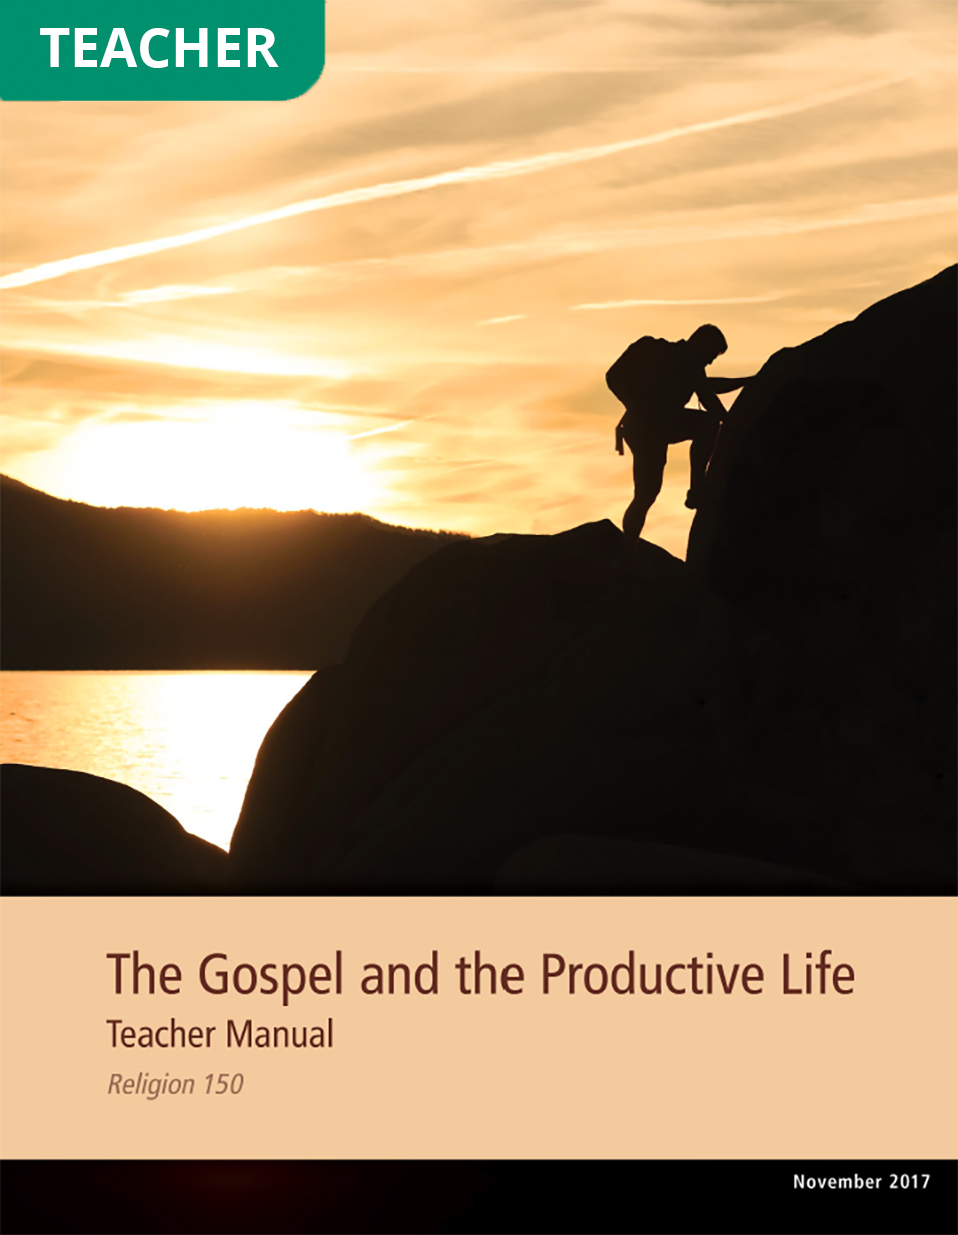 The Gospel and the Productive Life Teacher Manual (Rel 150)